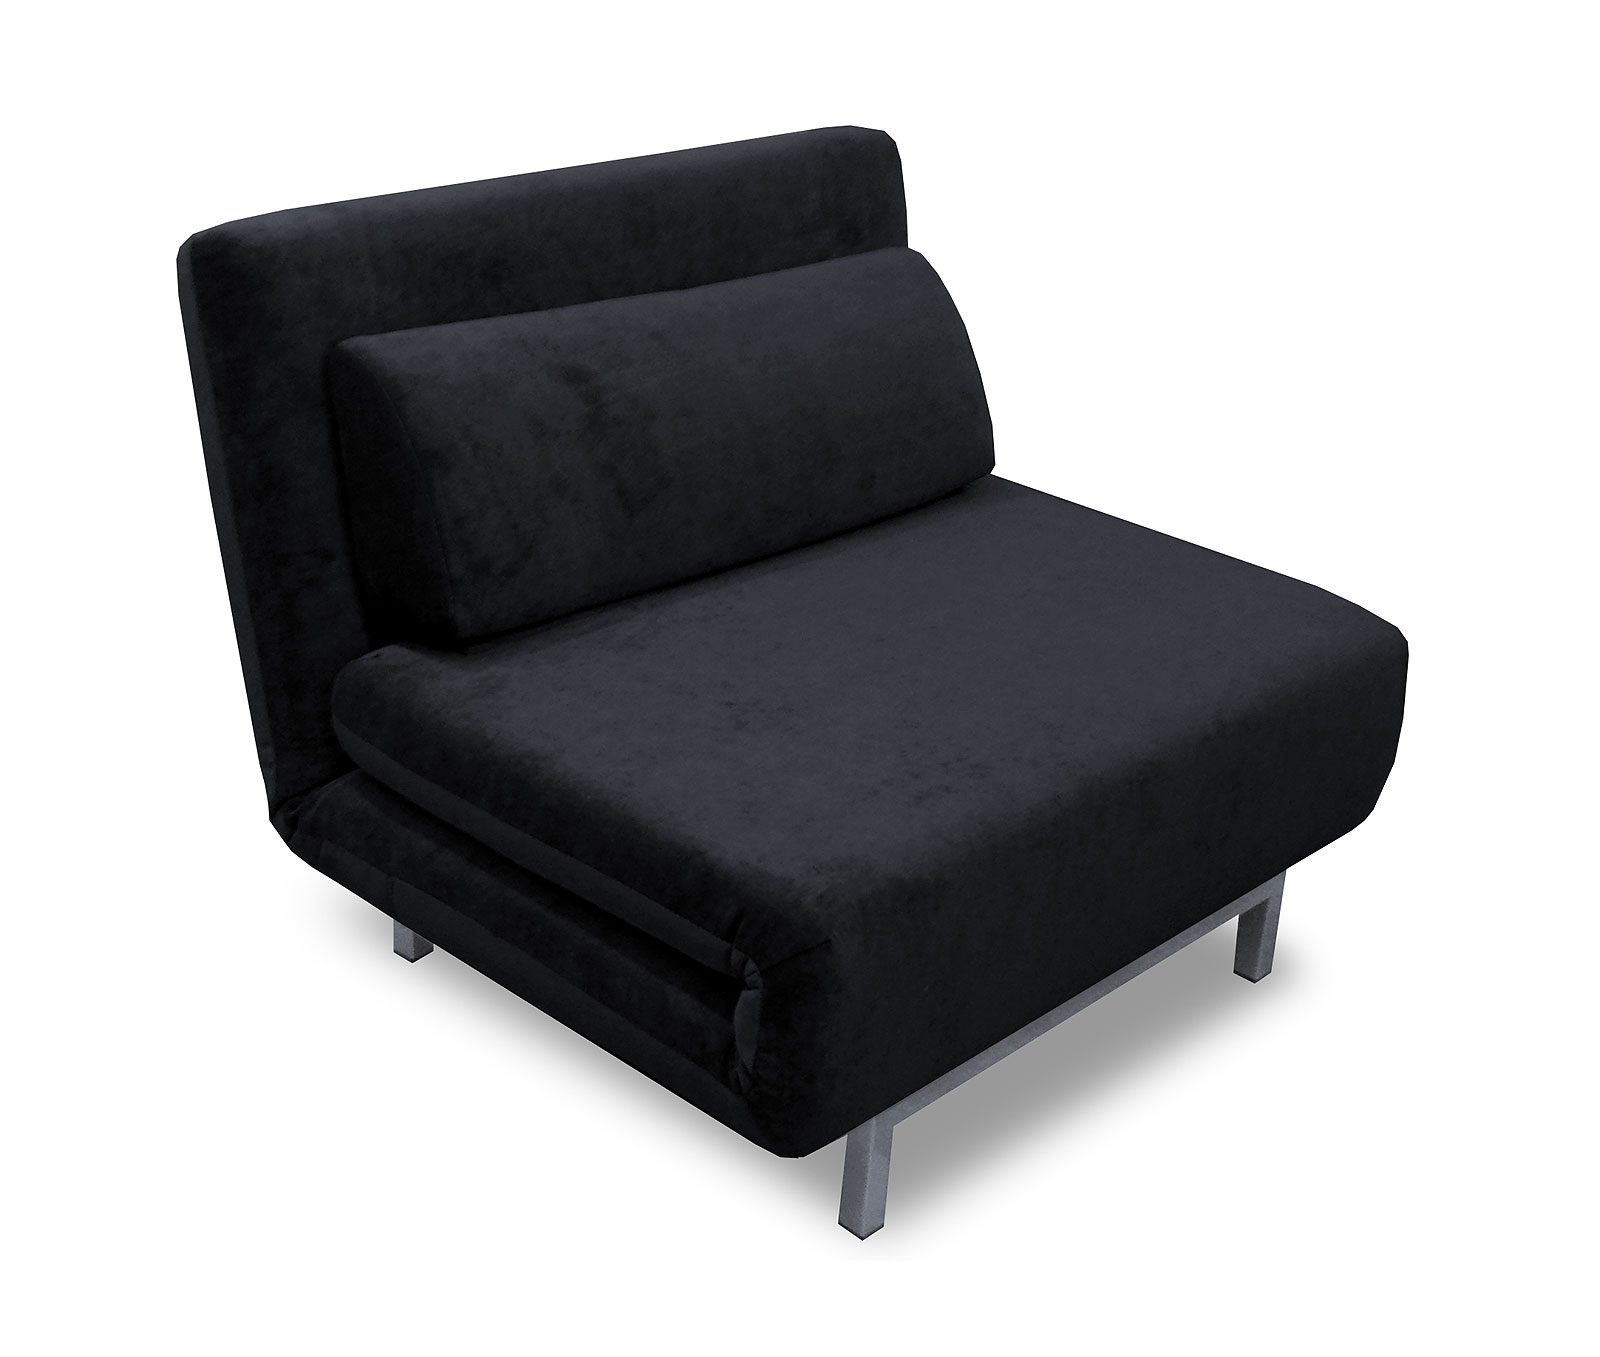 Black Convertible Chair Bed